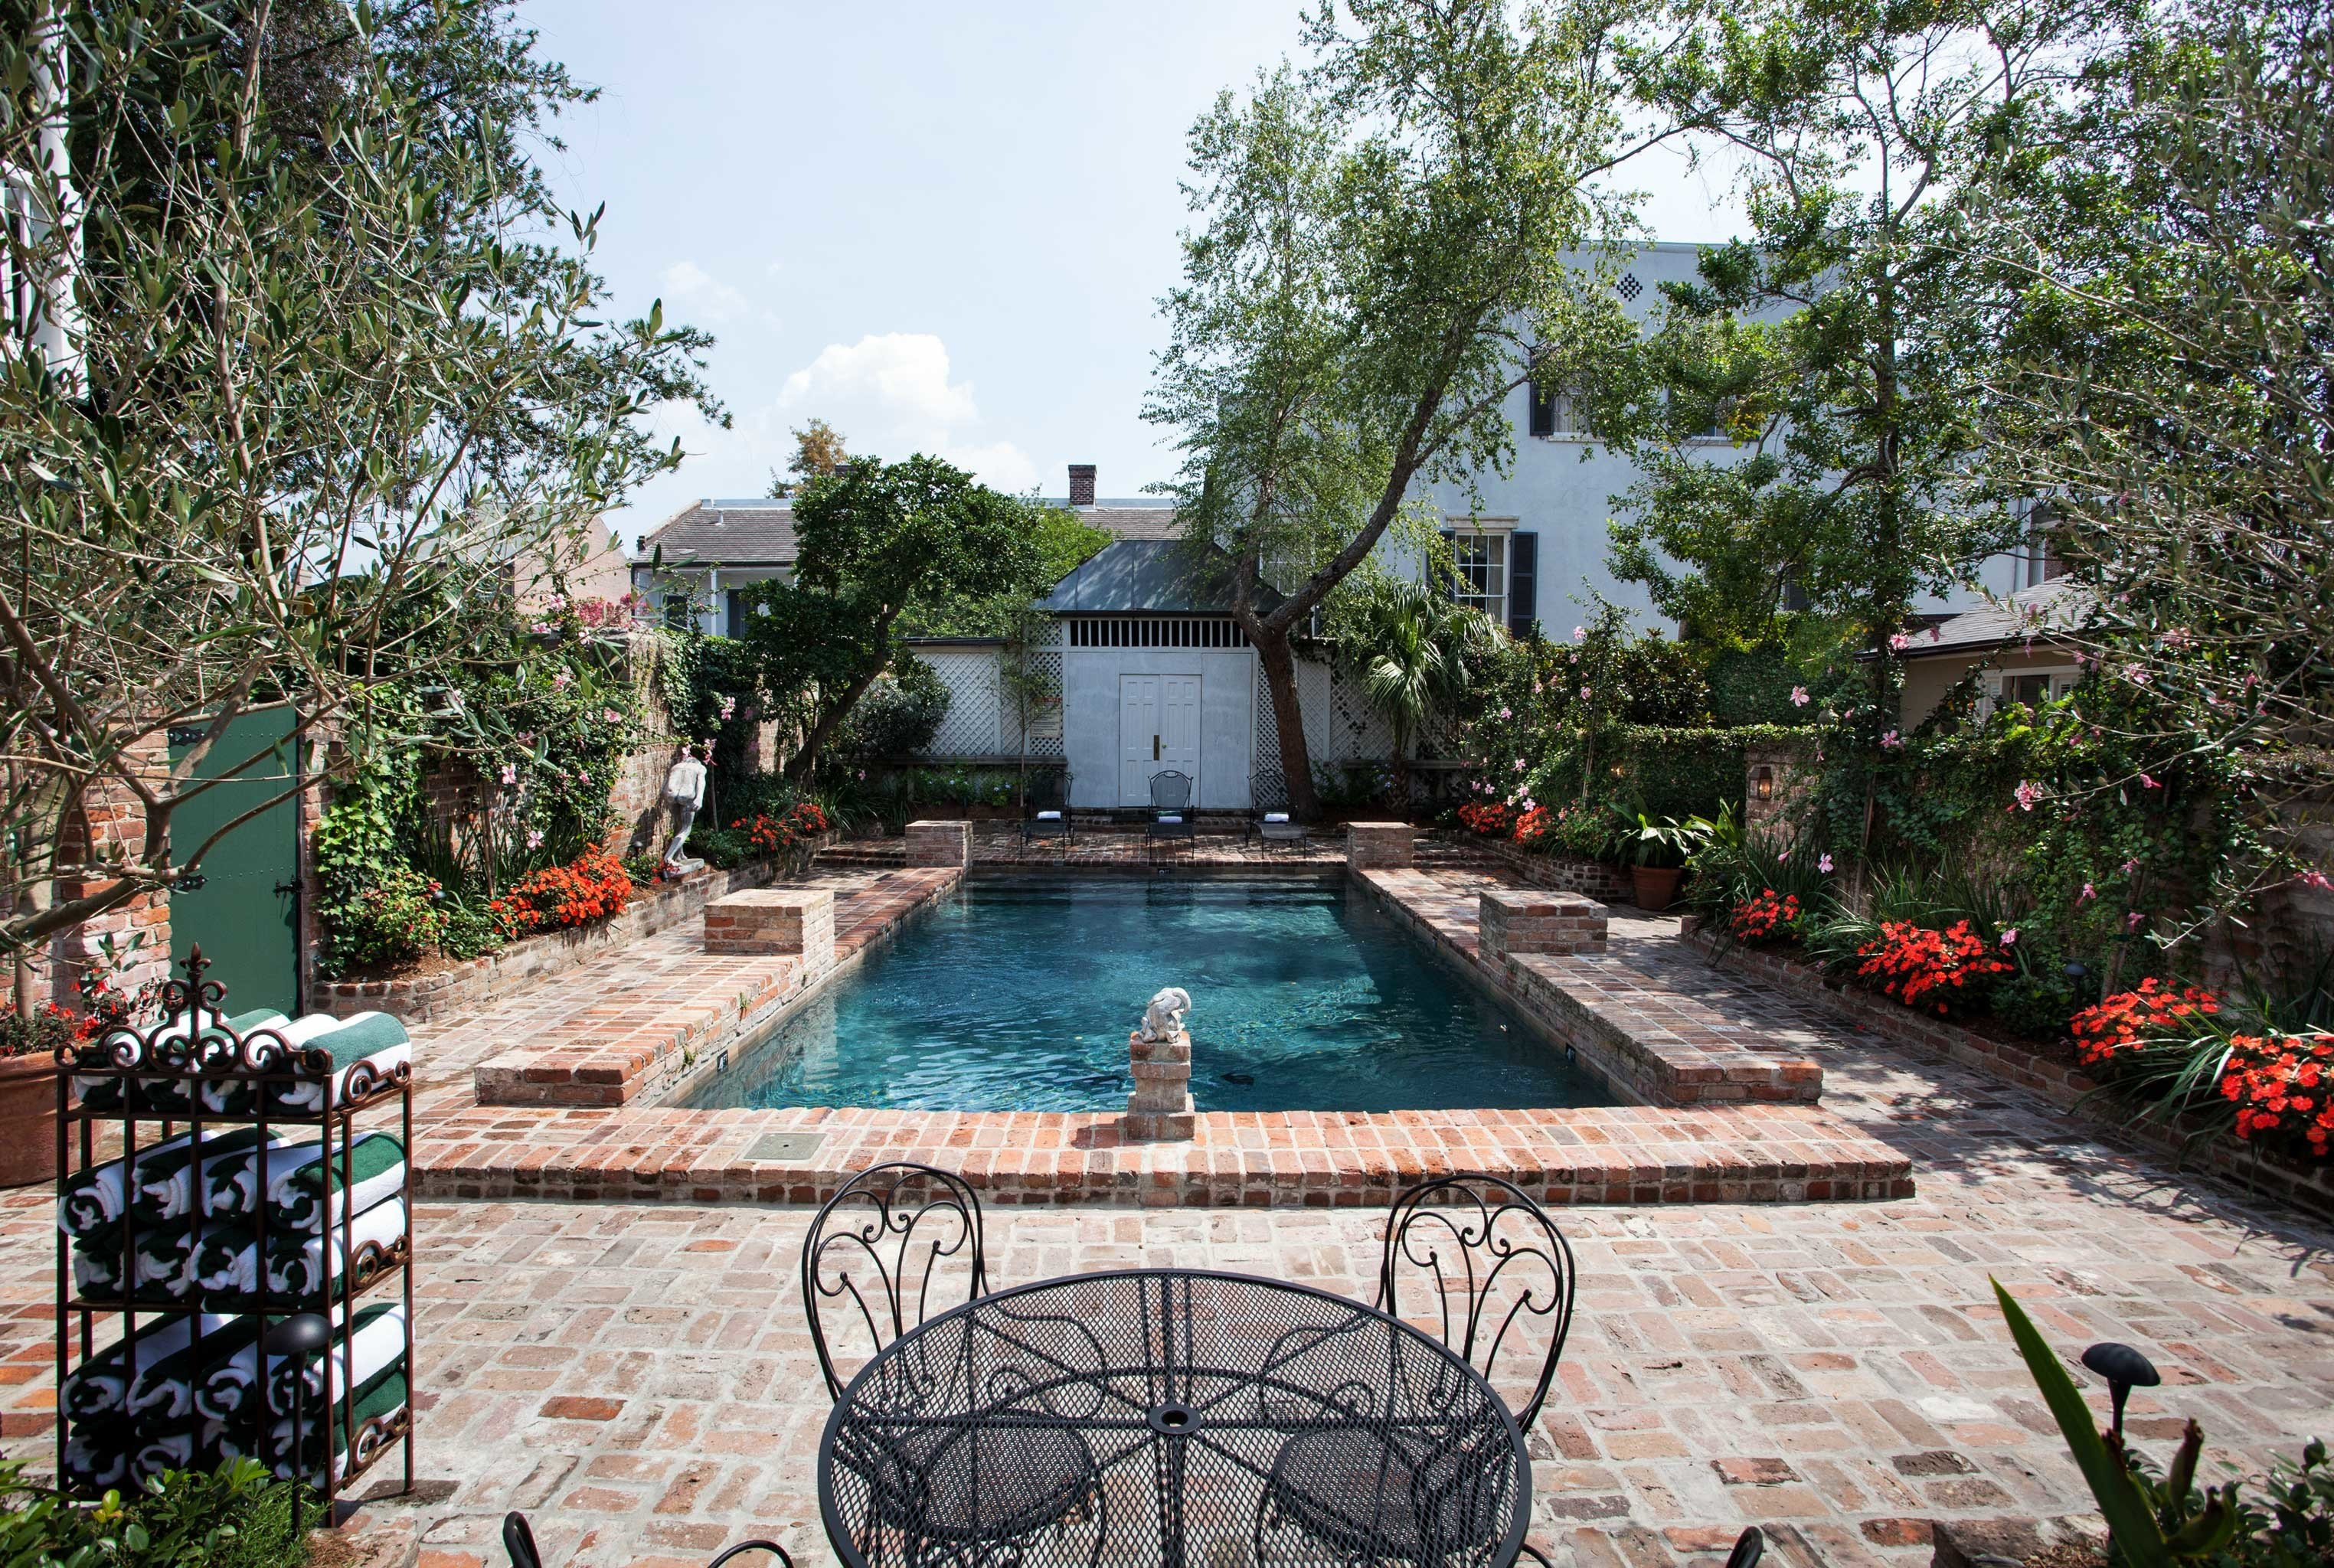 B&B Cultural Drink Eat Entertainment Nightlife Pool tree ground swimming pool property backyard Courtyard Garden yard cottage outdoor structure Resort Villa pond stone